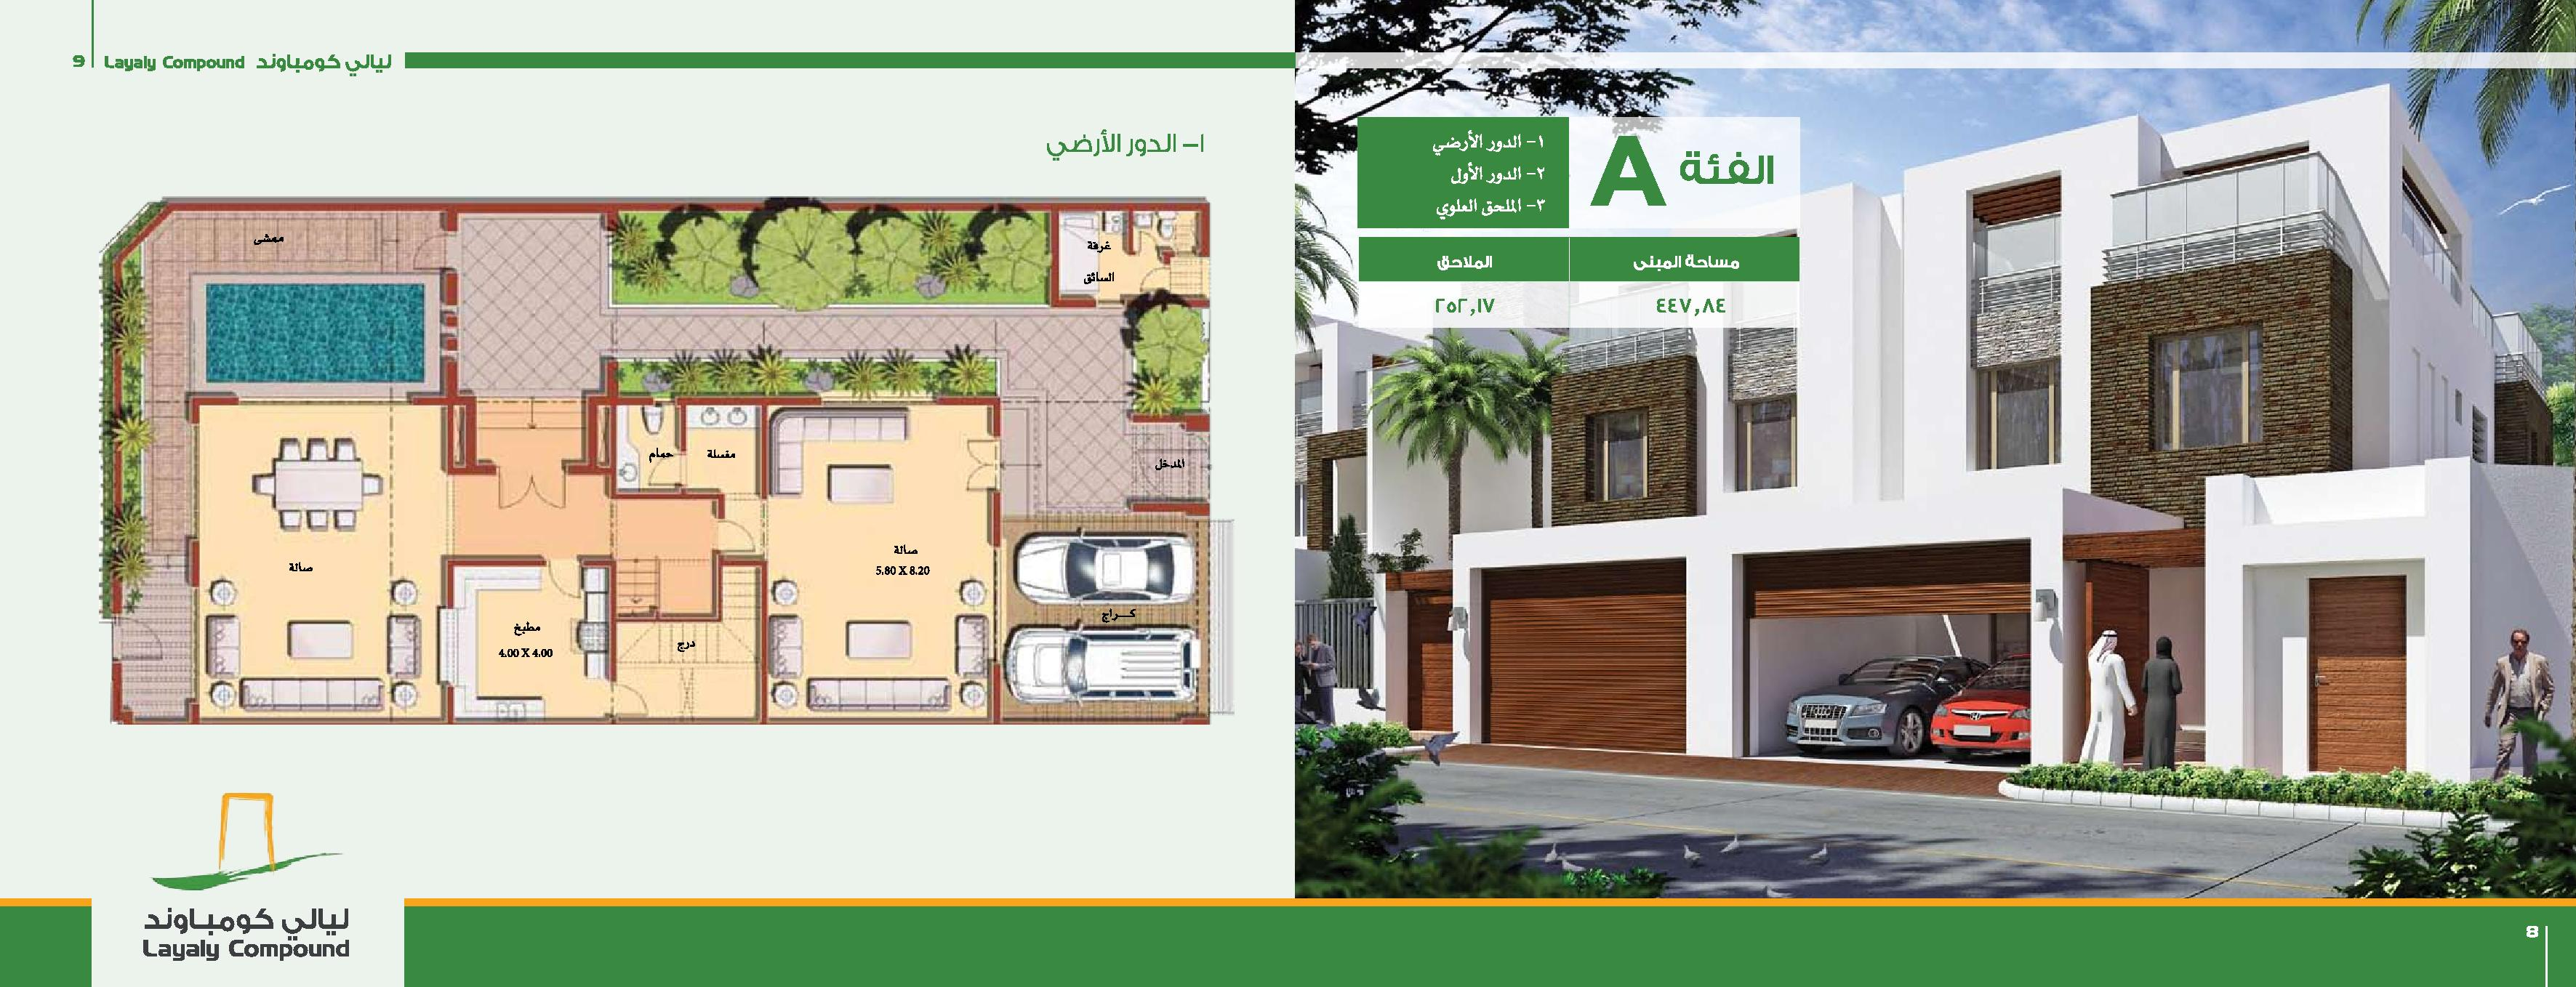 Layaly Compound Floor Plans Riyadh Saudi Arabia